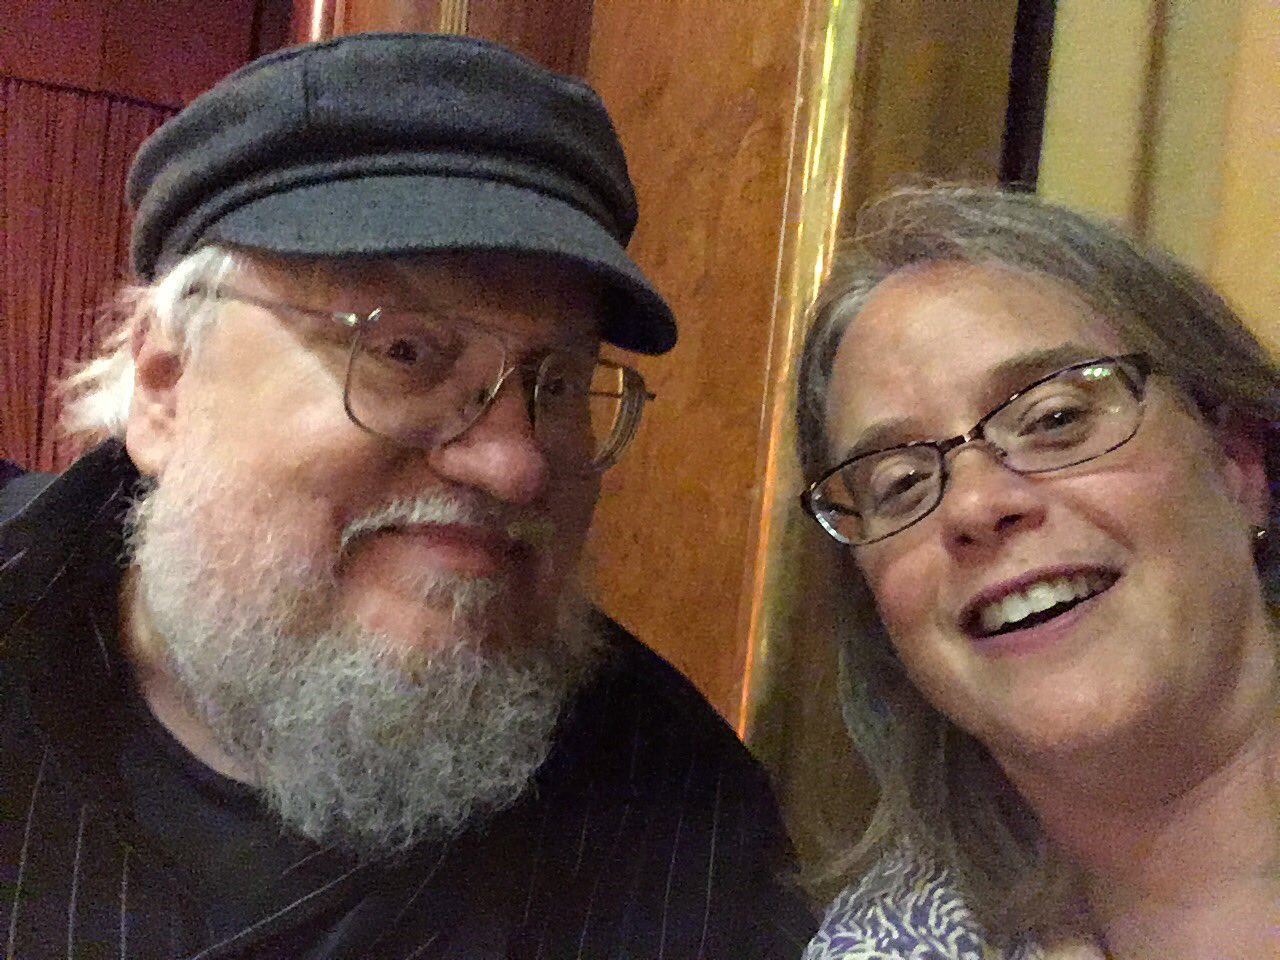 #StokerCon2017 selfies with @GRRMspeaking !!!! Cc @arrtreads @rosol @mortannarose https://t.co/7PwB2ZSq9y